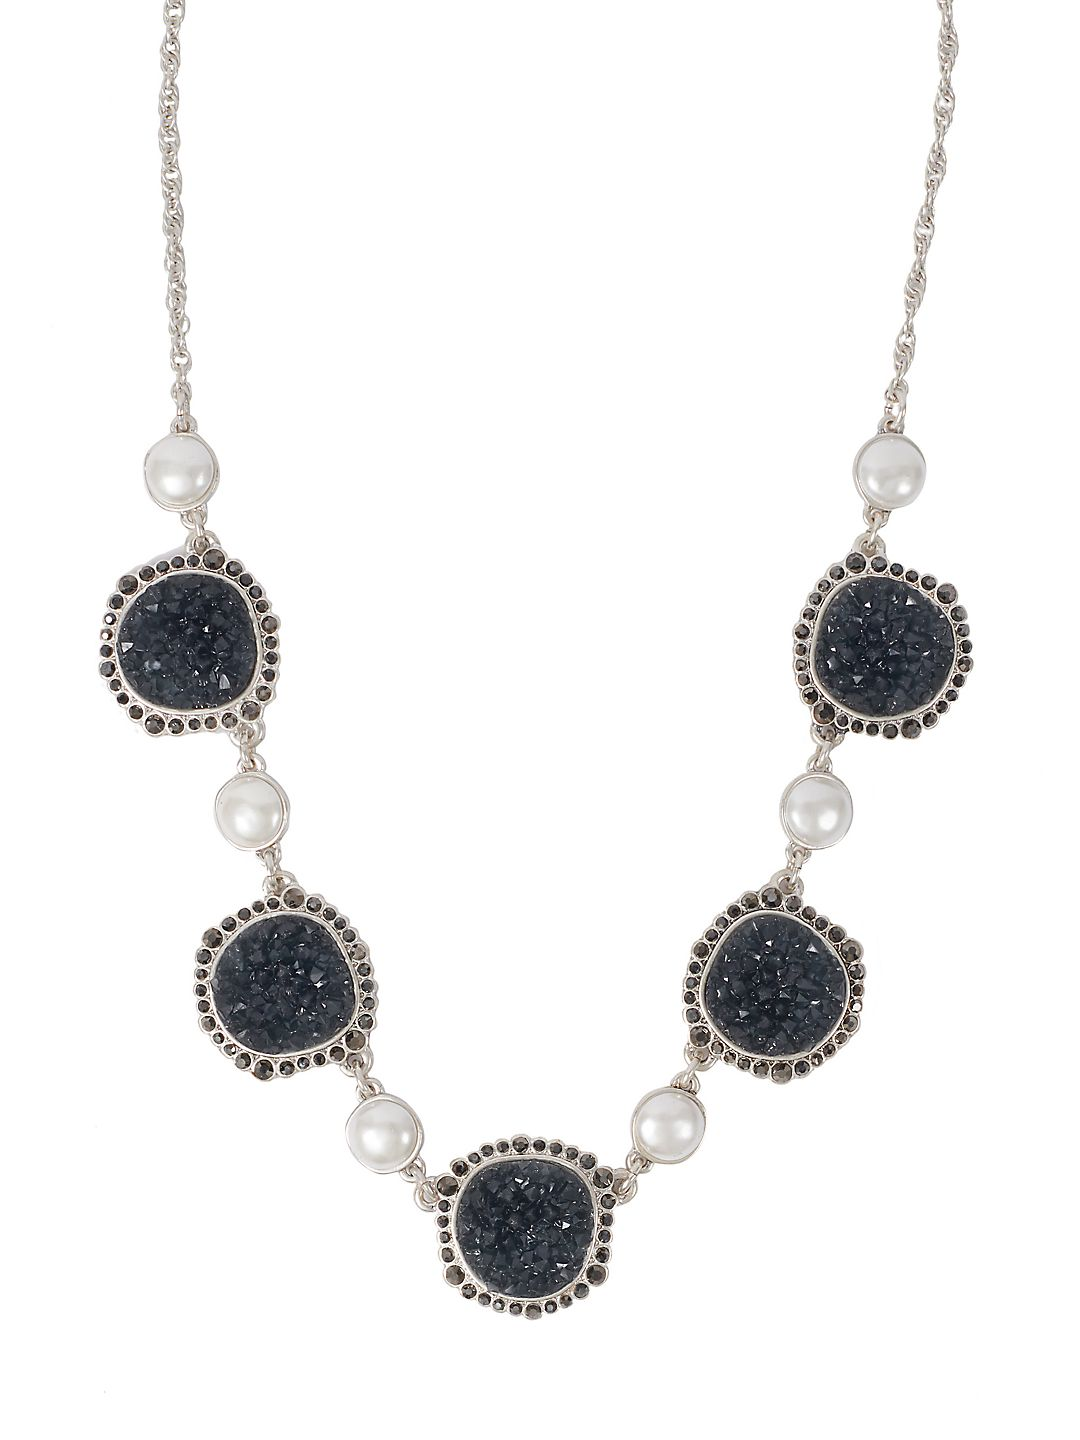 Modern Opulence Faux-Pearl & Druzy Statement Collar Necklace